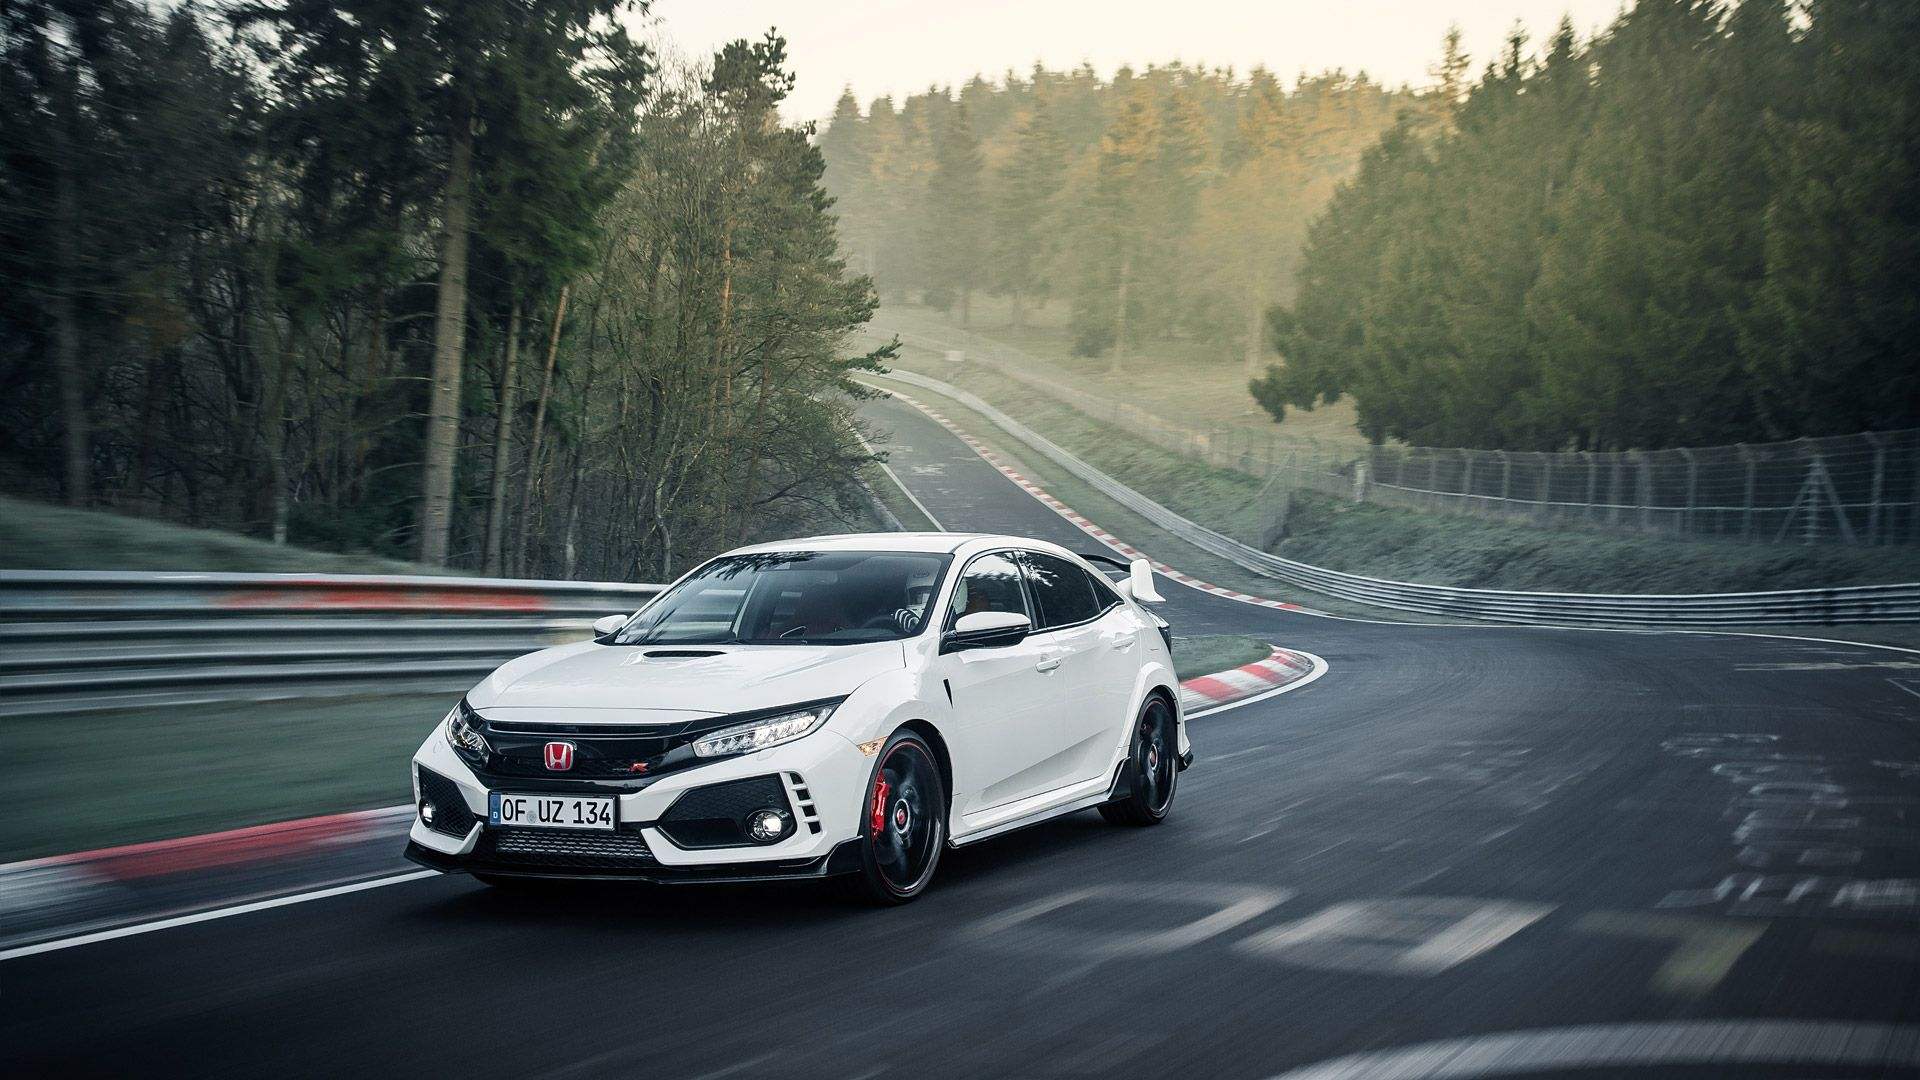 Honda Civic Type R Wallpapers Top Free Honda Civic Type R